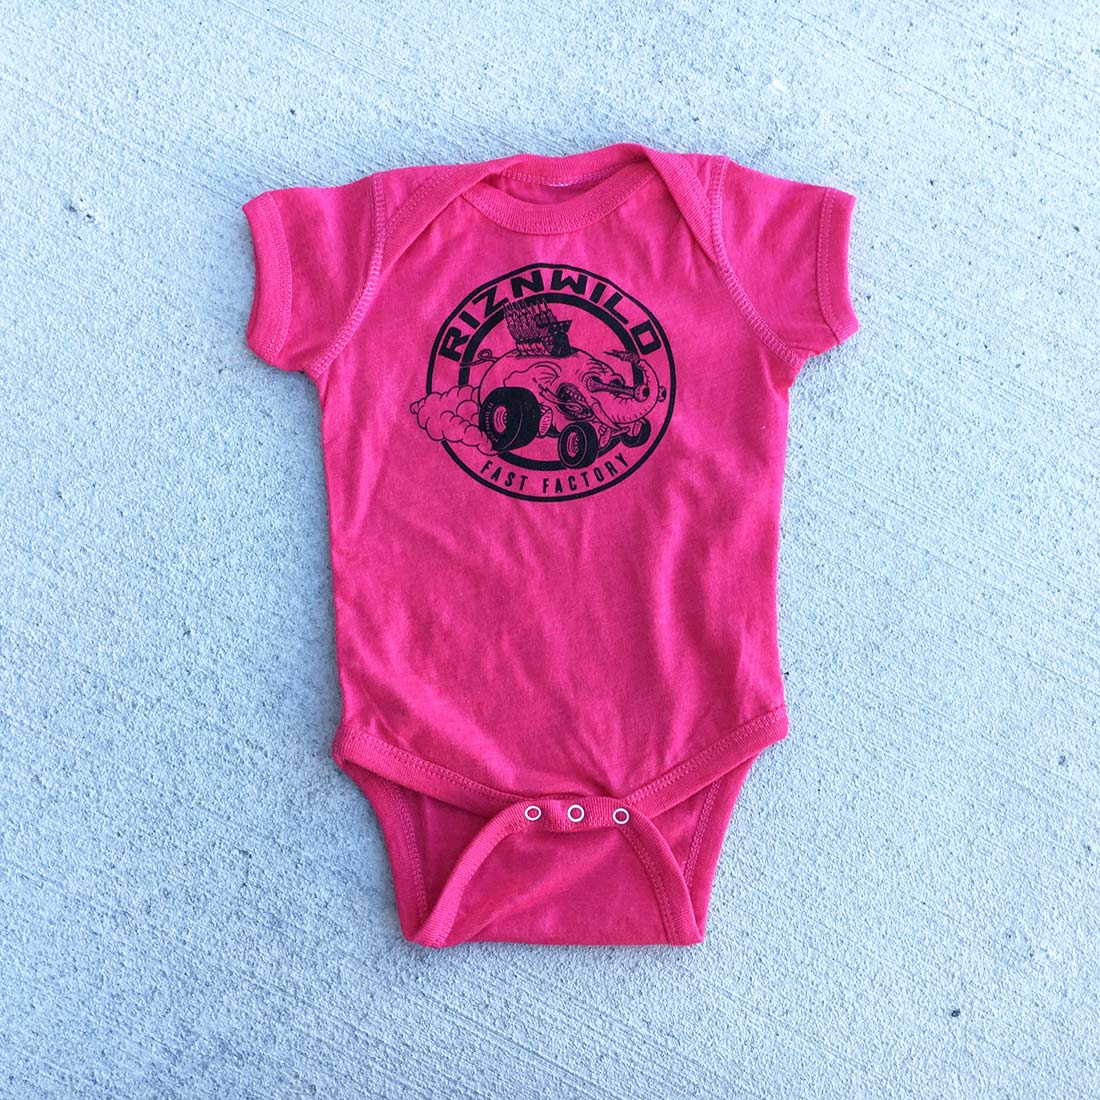 Eli Fast Baby Onesie in Heather Hot Pink